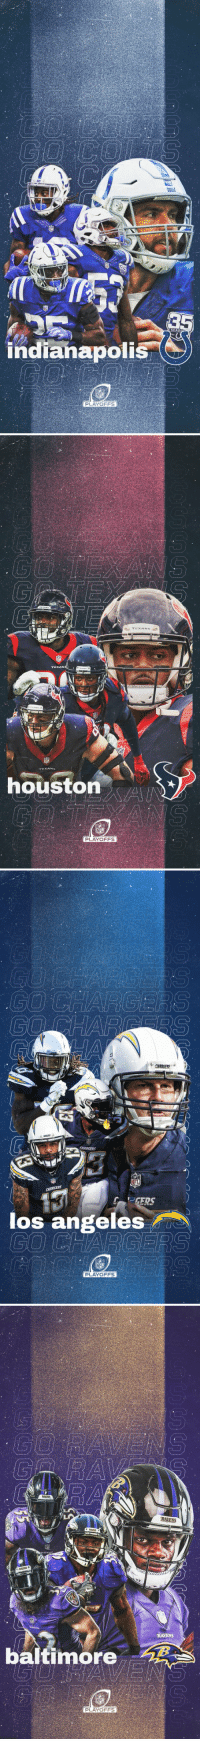 Indianapolis Colts, Memes, and Nfl: indianapolis  PLAYOFFS   TEXANS  oustonA  PLAYOFFS   los angeles  NFL  PLAYOFFS   RAVENS  RAVENS  baltimore  PLAYOFFS #NFLPlayoffs Wallpapers!  #Colts #Texans #FightForEachOther #RavensFlock https://t.co/LZDTEGqN93